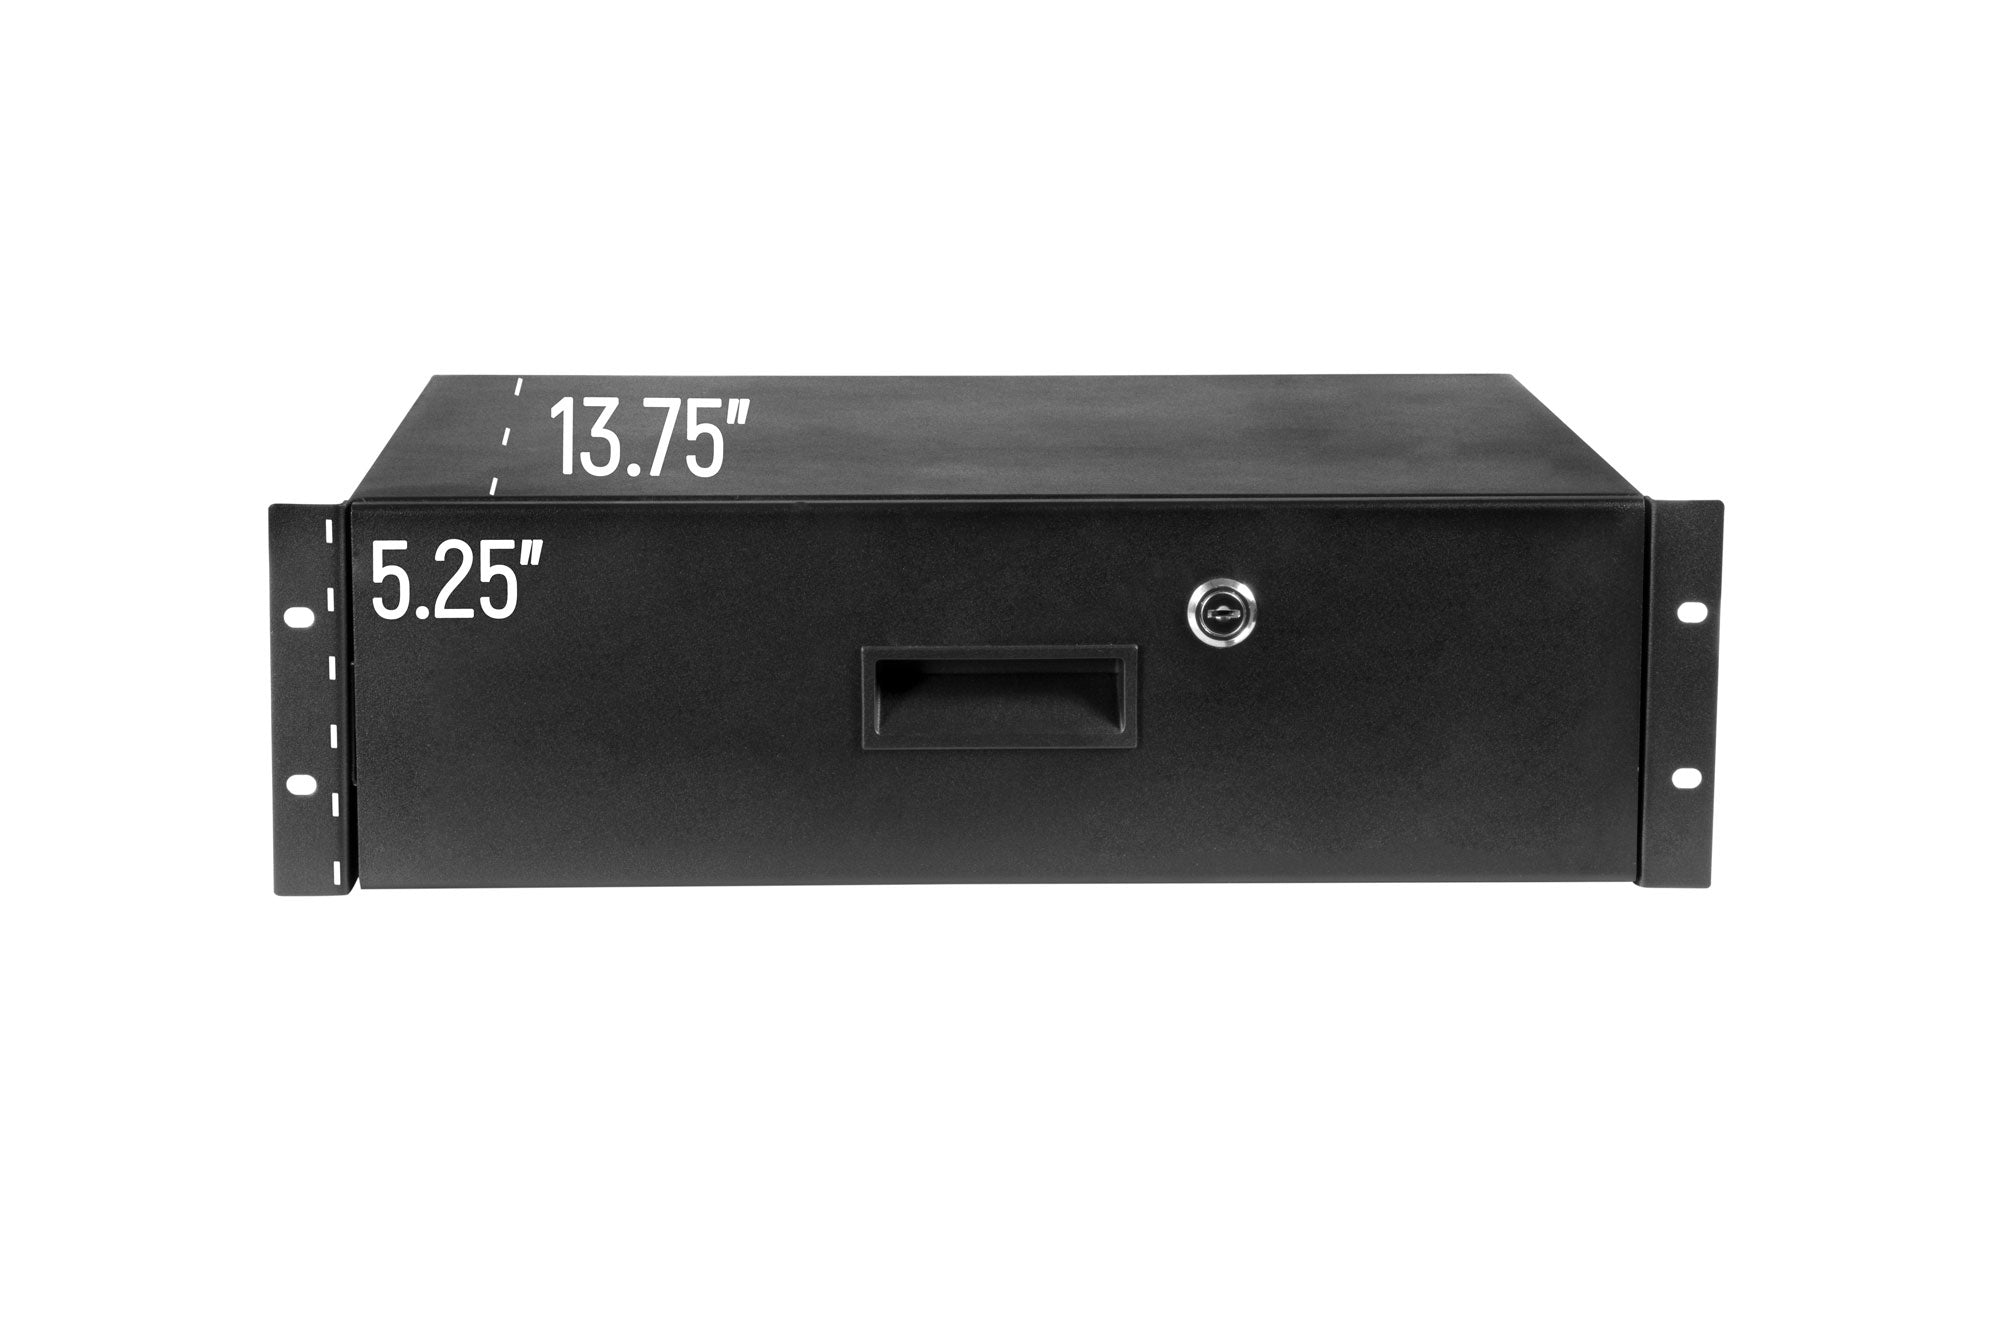 OSP RD3U Metal Rack Drawer with Lock, 3U